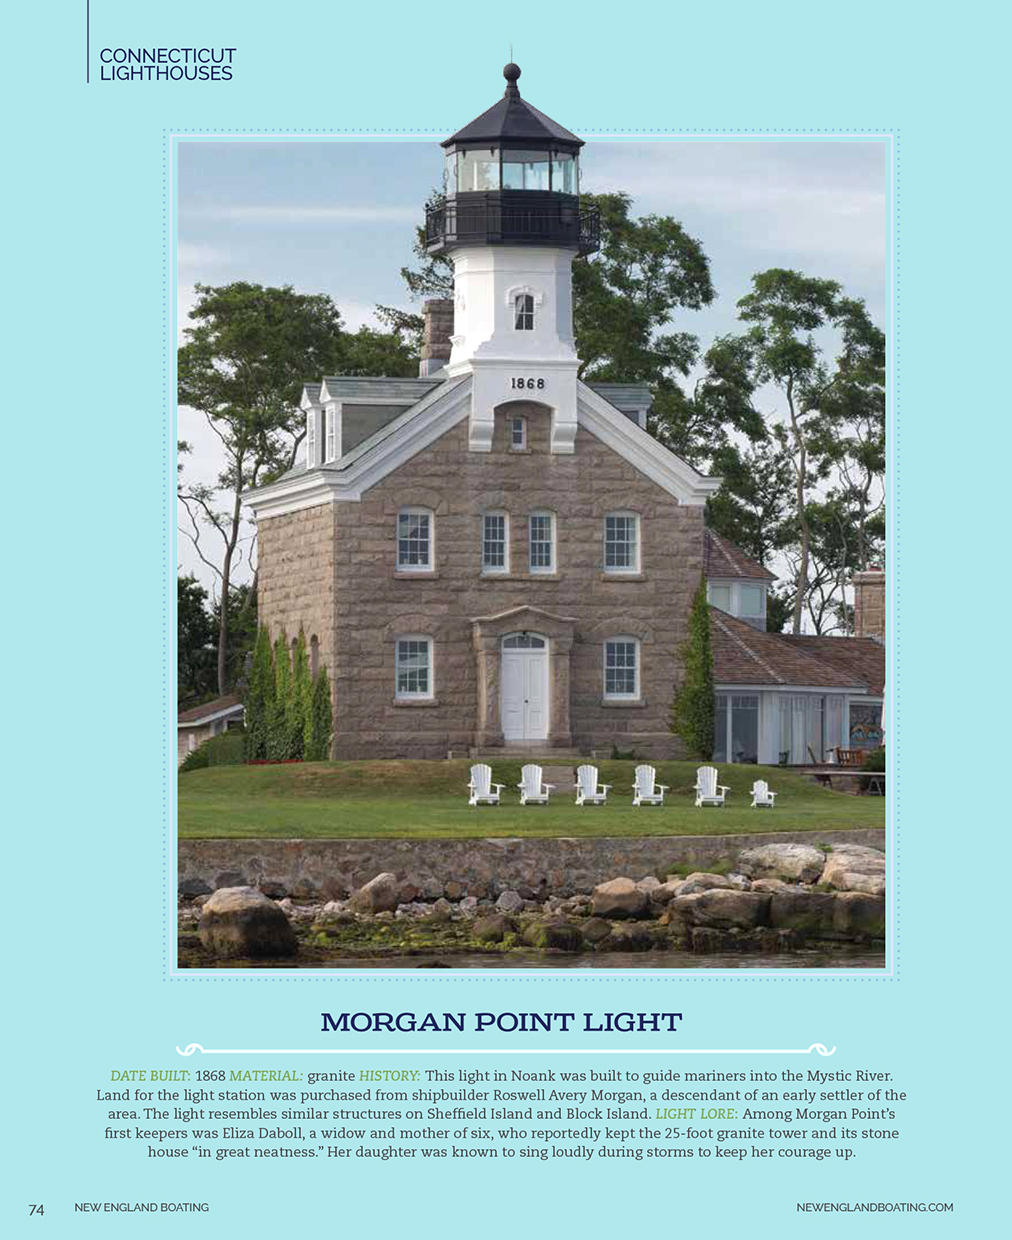 New-England-Boating-Morgan-Point-Light-Caryn-B-Davis